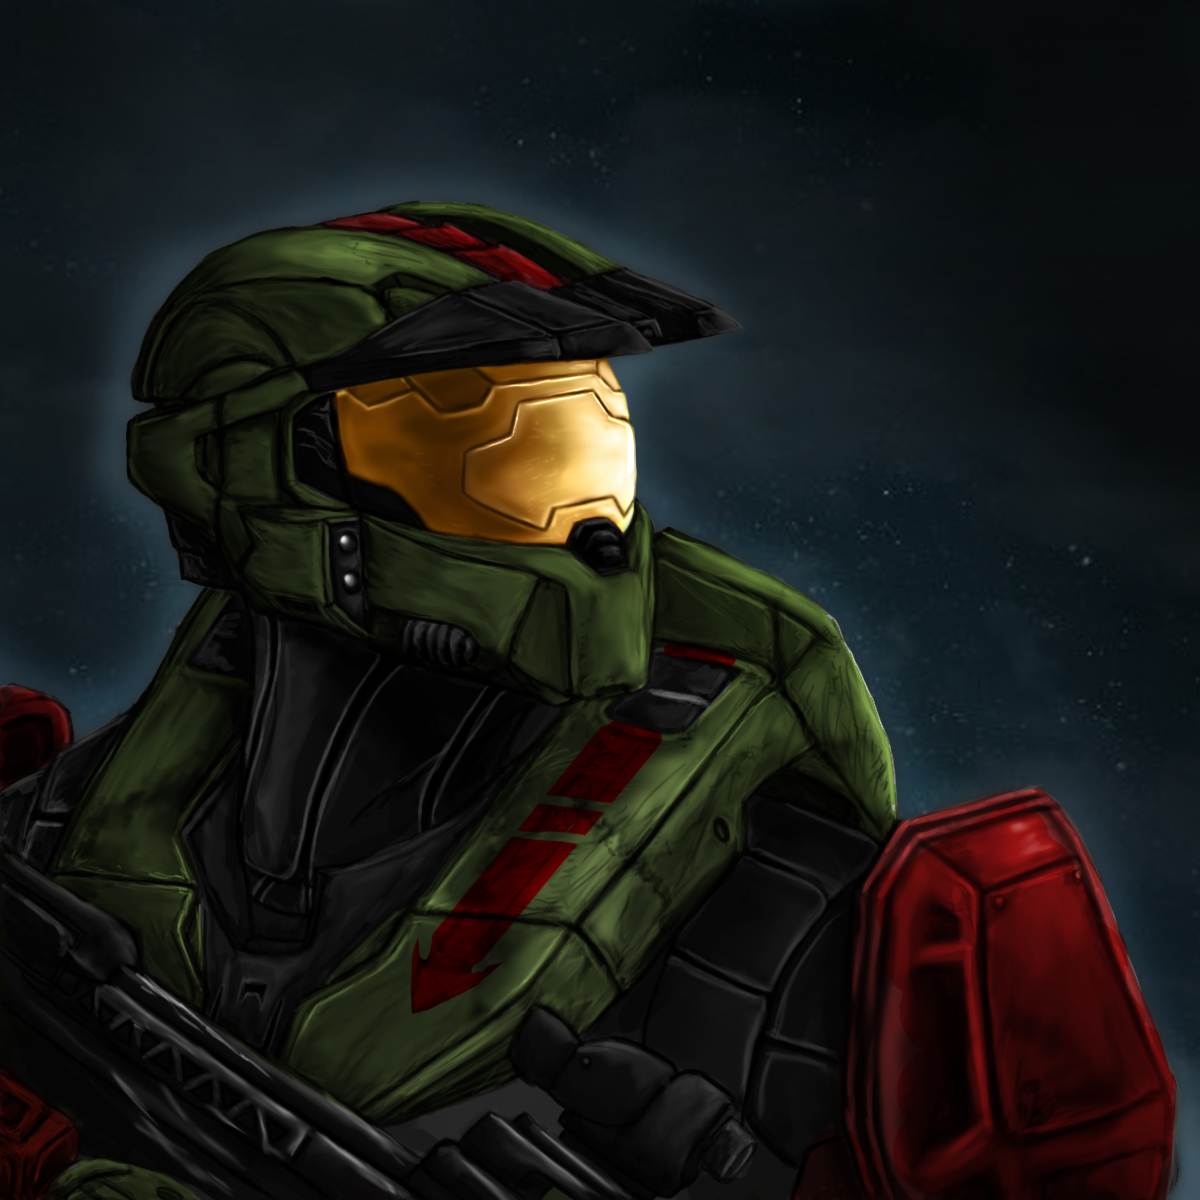 Halo: A Dream or Geas?